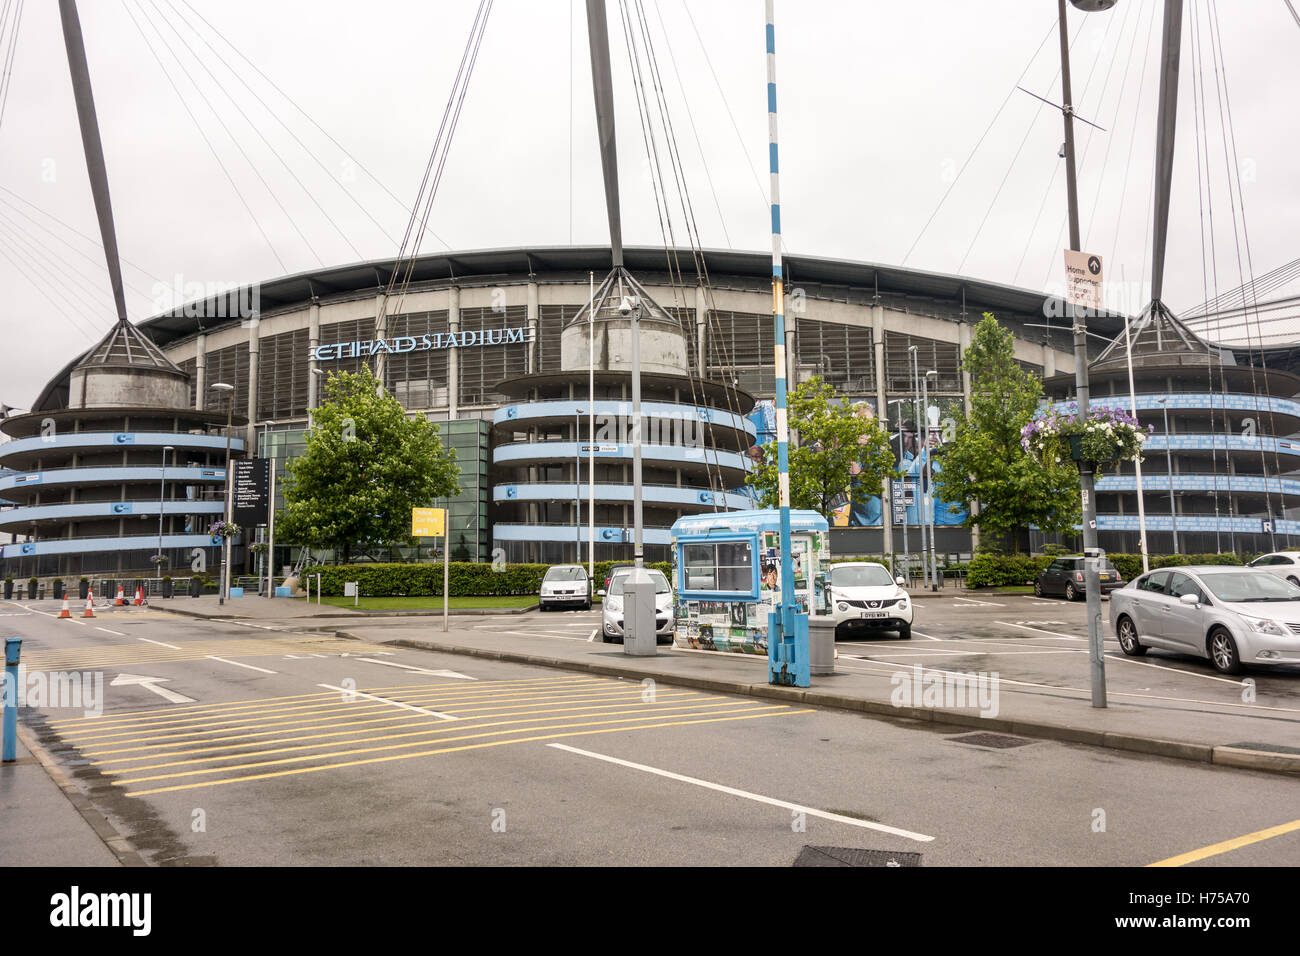 Commonwealth Games and is now home to one of the Premier League football clubs, Manchester City based in Manchester. - Stock Image